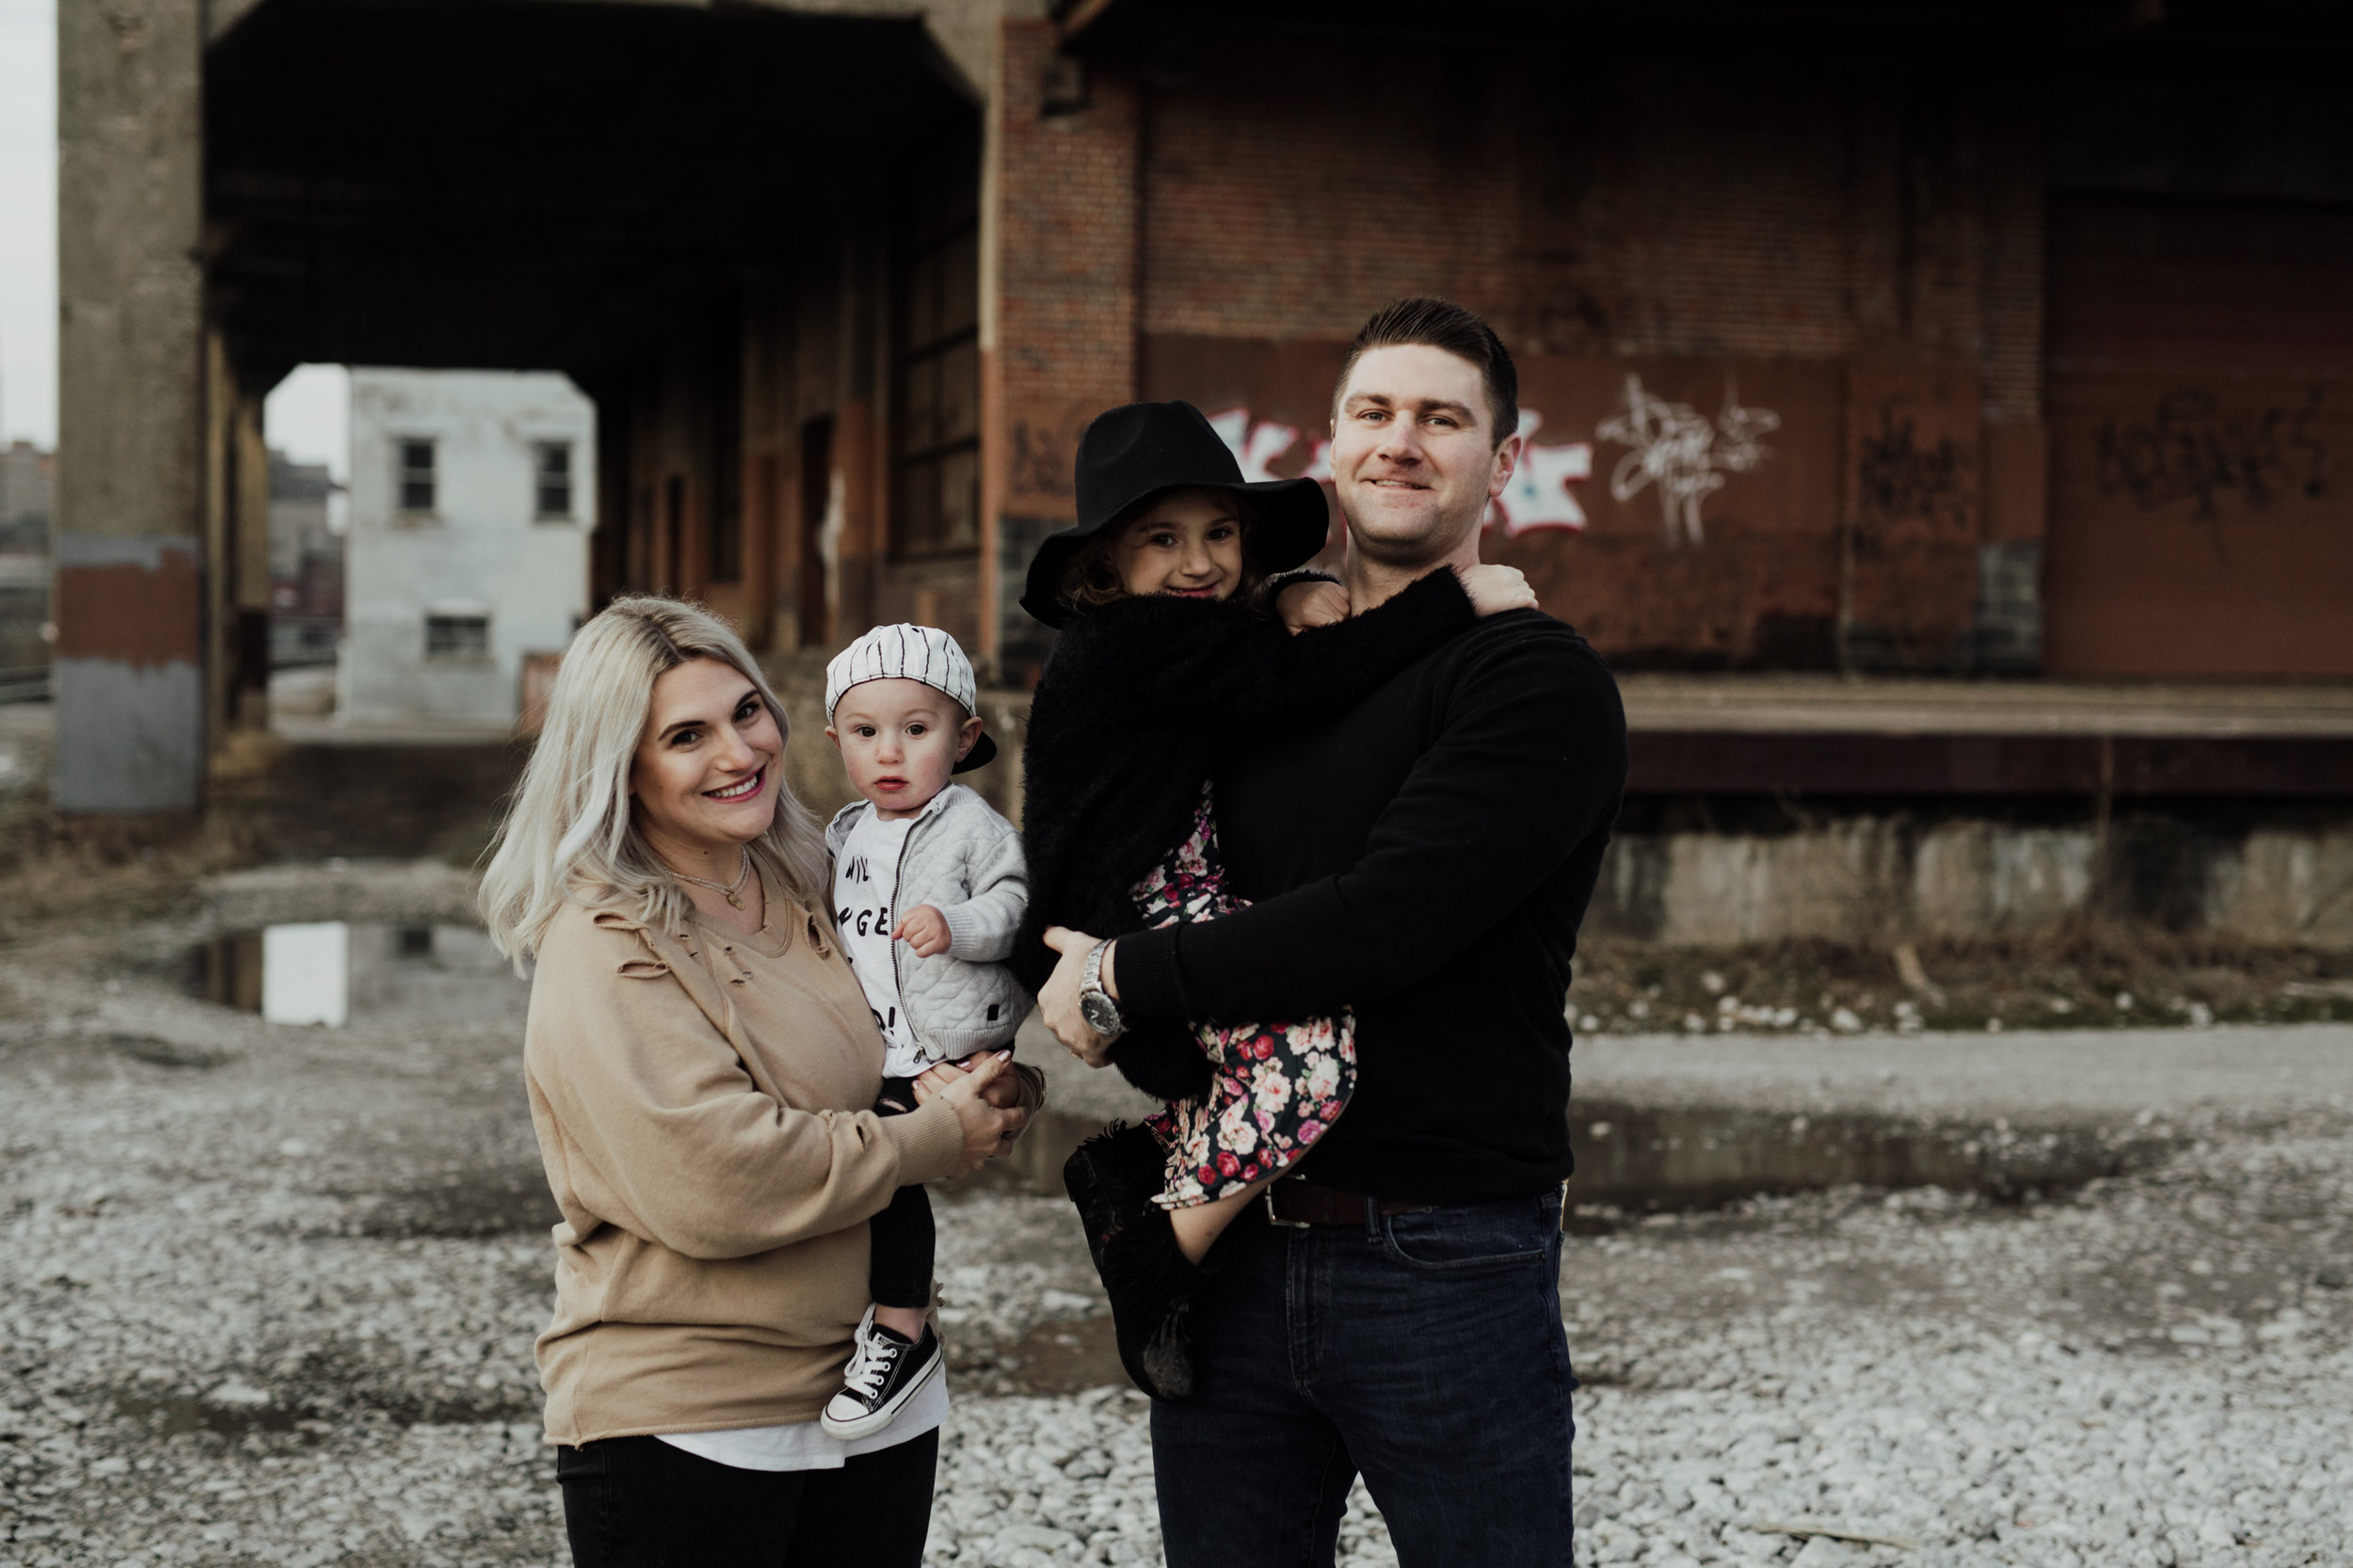 Aldred Family 2018 Crystal Ludwick Photo Louisville Kentucky Wedding Photographer (54 of 58).jpg